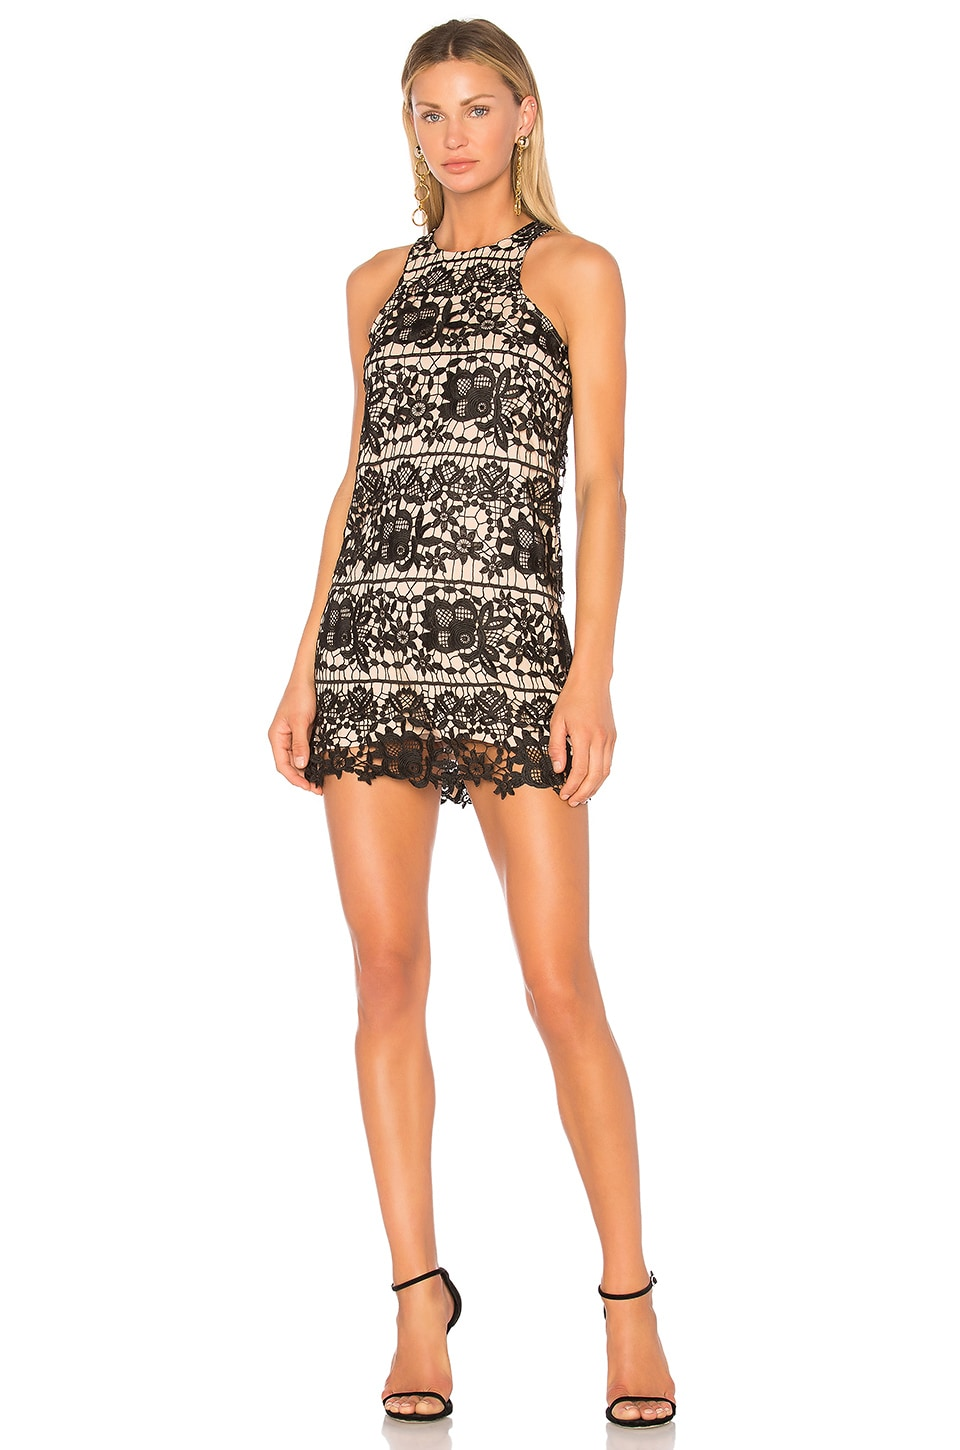 Lovers + Friends Caspian Shift Dress in Black